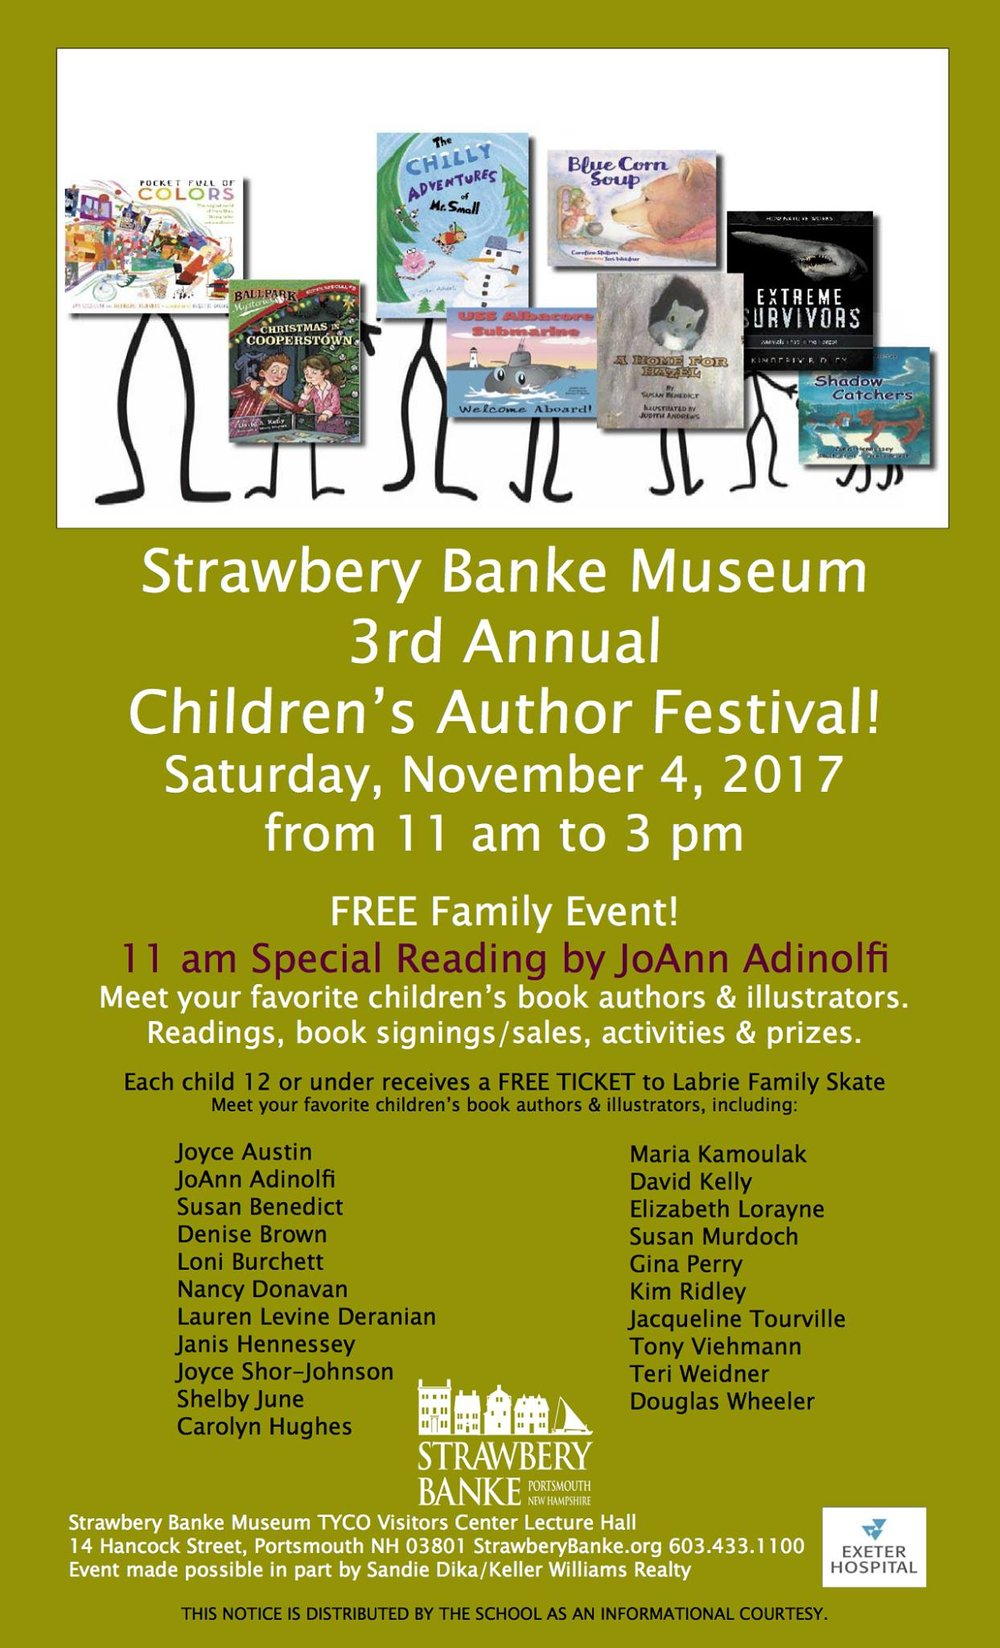 Strawbery Banke Children's Author Festival.jpg